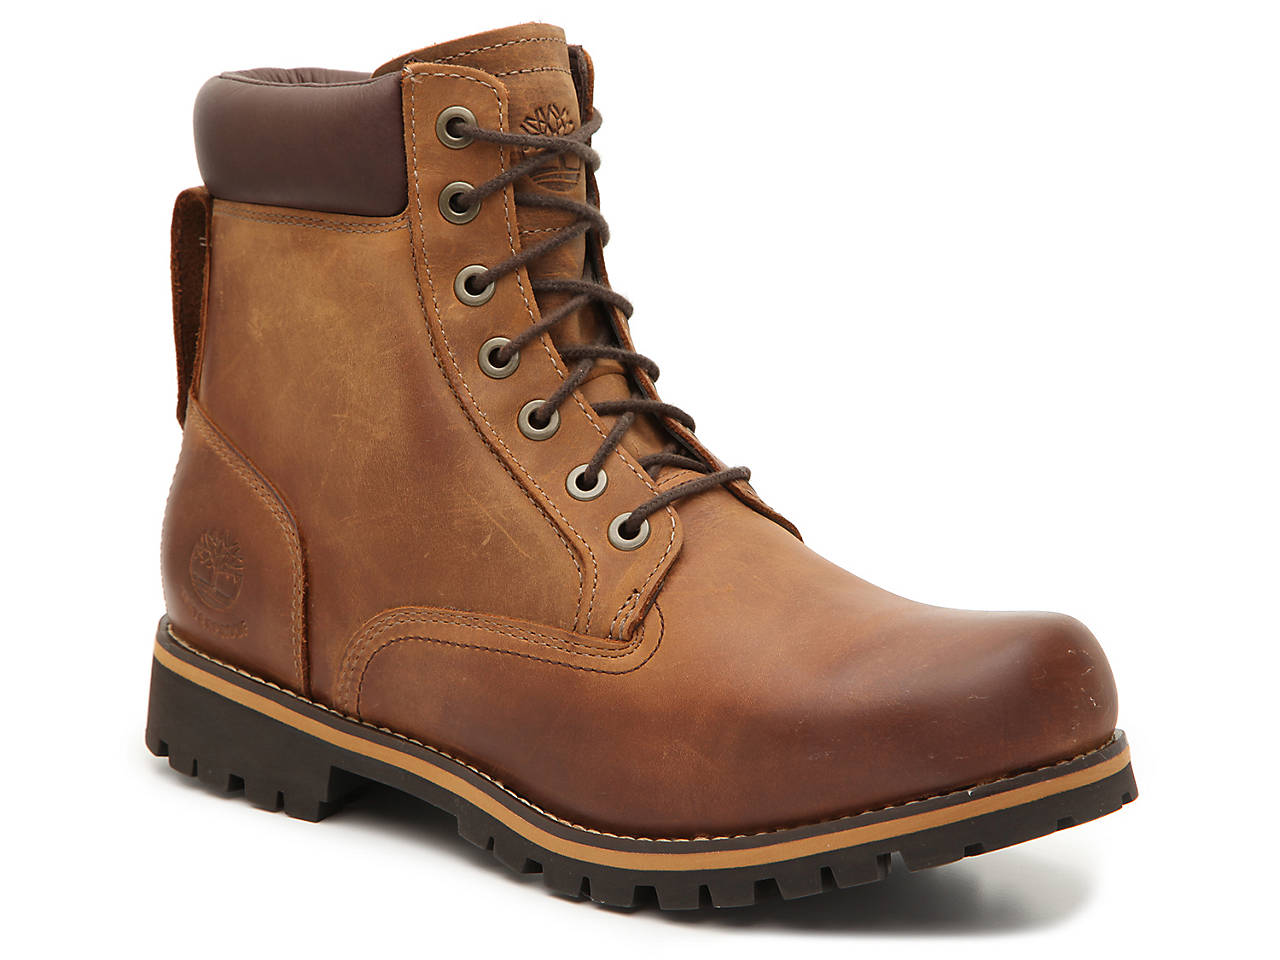 Timberland Rugged 6in Boot Men's Shoes | DSW